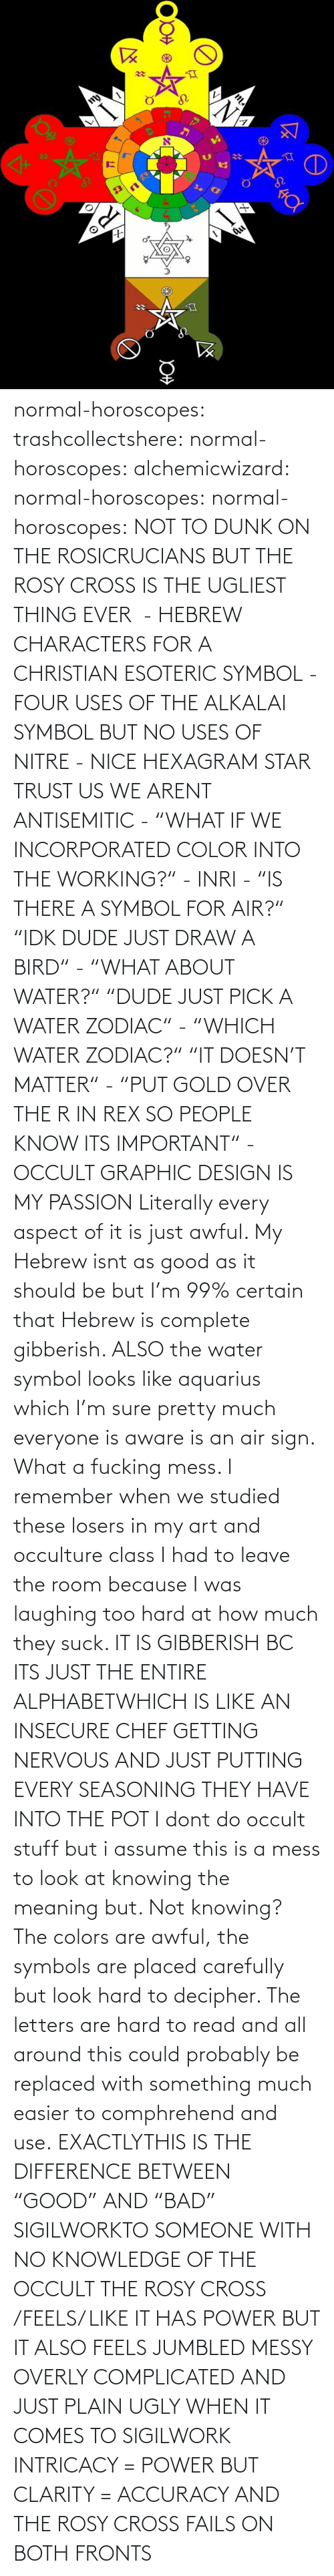 "Rex: normal-horoscopes:  trashcollectshere: normal-horoscopes:   alchemicwizard:  normal-horoscopes:  normal-horoscopes: NOT TO DUNK ON THE ROSICRUCIANS BUT THE ROSY CROSS IS THE UGLIEST THING EVER  - HEBREW CHARACTERS FOR A CHRISTIAN ESOTERIC SYMBOL - FOUR USES OF THE ALKALAI SYMBOL BUT NO USES OF NITRE - NICE HEXAGRAM STAR TRUST US WE ARENT ANTISEMITIC - ""WHAT IF WE INCORPORATED COLOR INTO THE WORKING?"" - INRI - ""IS THERE A SYMBOL FOR AIR?"" ""IDK DUDE JUST DRAW A BIRD"" - ""WHAT ABOUT WATER?"" ""DUDE JUST PICK A WATER ZODIAC"" - ""WHICH WATER ZODIAC?"" ""IT DOESN'T MATTER"" - ""PUT GOLD OVER THE R IN REX SO PEOPLE KNOW ITS IMPORTANT"" - OCCULT GRAPHIC DESIGN IS MY PASSION  Literally every aspect of it is just awful. My Hebrew isnt as good as it should be but I'm 99% certain that Hebrew is complete gibberish.  ALSO the water symbol looks like aquarius which I'm sure pretty much everyone is aware is an air sign. What a fucking mess.  I remember when we studied these losers in my art and occulture class I had to leave the room because I was laughing too hard at how much they suck.   IT IS GIBBERISH BC ITS JUST THE ENTIRE ALPHABETWHICH IS LIKE AN INSECURE CHEF GETTING NERVOUS AND JUST PUTTING EVERY SEASONING THEY HAVE INTO THE POT     I dont do occult stuff but i assume this is a mess to look at knowing the meaning but. Not knowing? The colors are awful, the symbols are placed carefully but look hard to decipher. The letters are hard to read and all around this could probably be replaced with something much easier to comphrehend and use.  EXACTLYTHIS IS THE DIFFERENCE BETWEEN ""GOOD"" AND ""BAD"" SIGILWORKTO SOMEONE WITH NO KNOWLEDGE OF THE OCCULT THE ROSY CROSS /FEELS/ LIKE IT HAS POWER BUT IT ALSO FEELS JUMBLED MESSY OVERLY COMPLICATED AND JUST PLAIN UGLY WHEN IT COMES TO SIGILWORK INTRICACY = POWER BUT CLARITY = ACCURACY AND THE ROSY CROSS FAILS ON BOTH FRONTS"